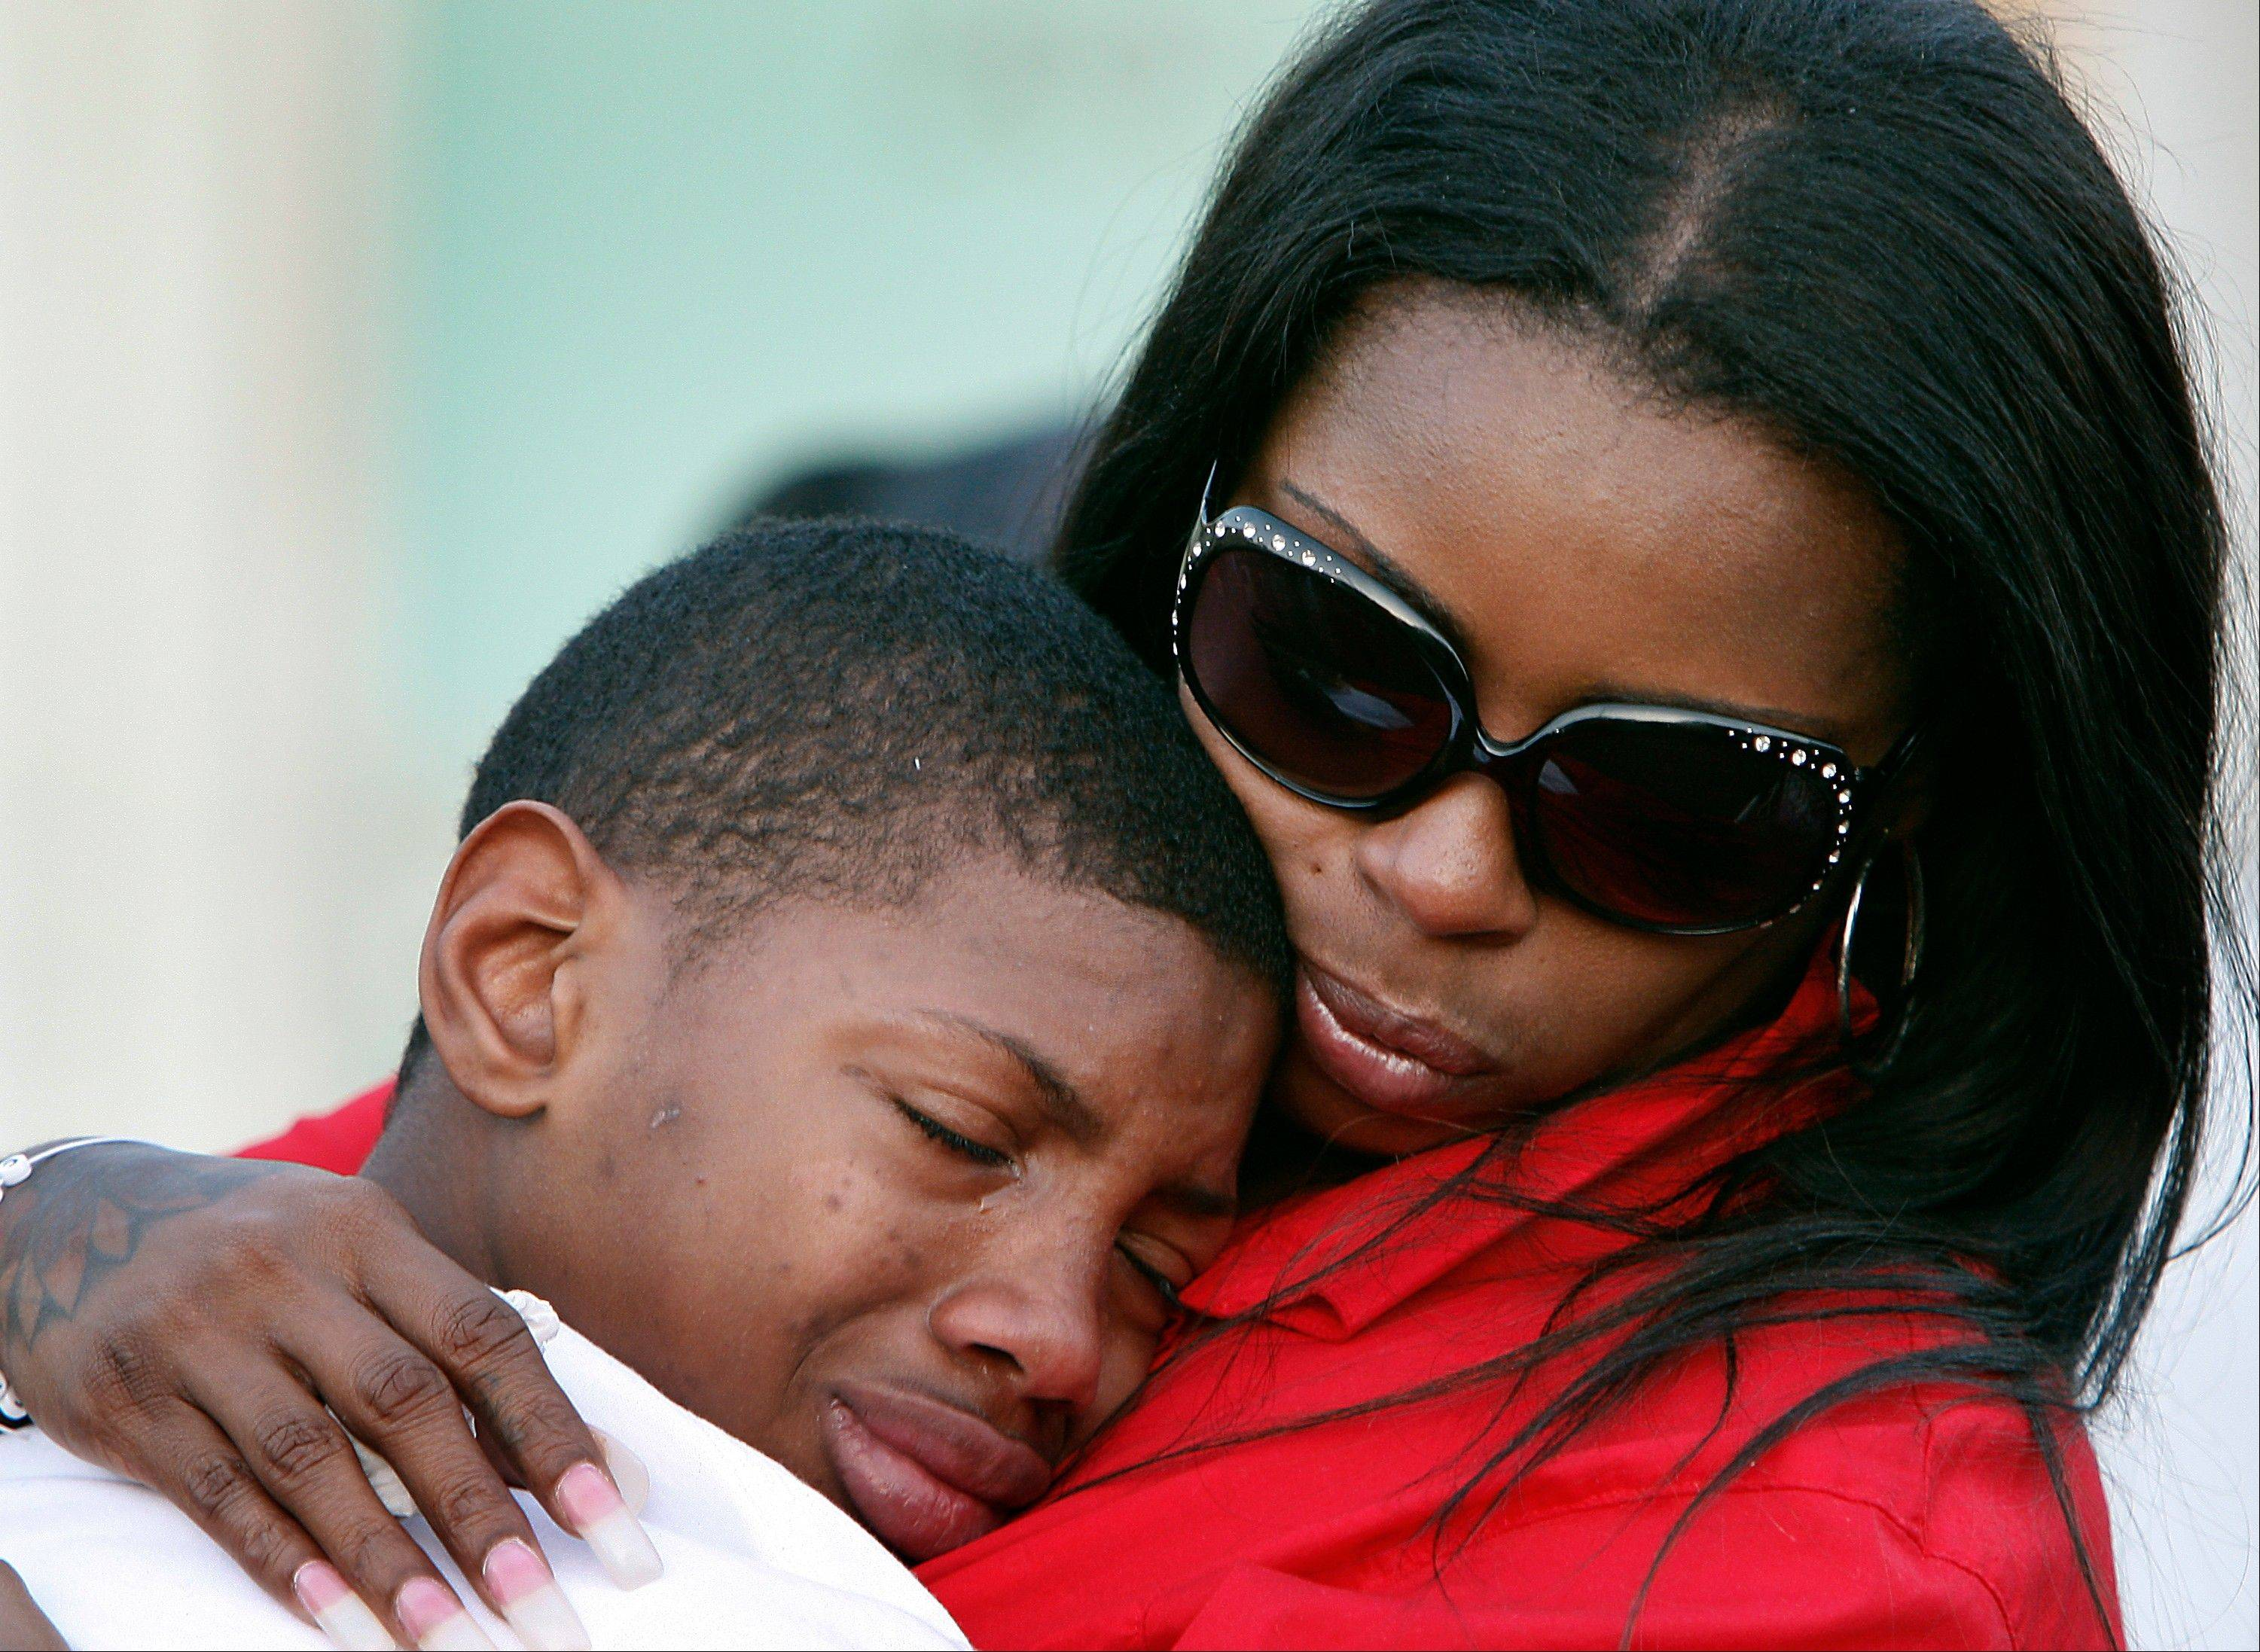 Teresa Carter, right, mother of Chavis Carter, comforts her other son Kizziah Carter on Monday, Aug. 20, 2012 following a prayer vigil held on the grounds of The National Civil Rights Museum in Memphis, Tenn., for Chavis Carter, who Jonesboro,